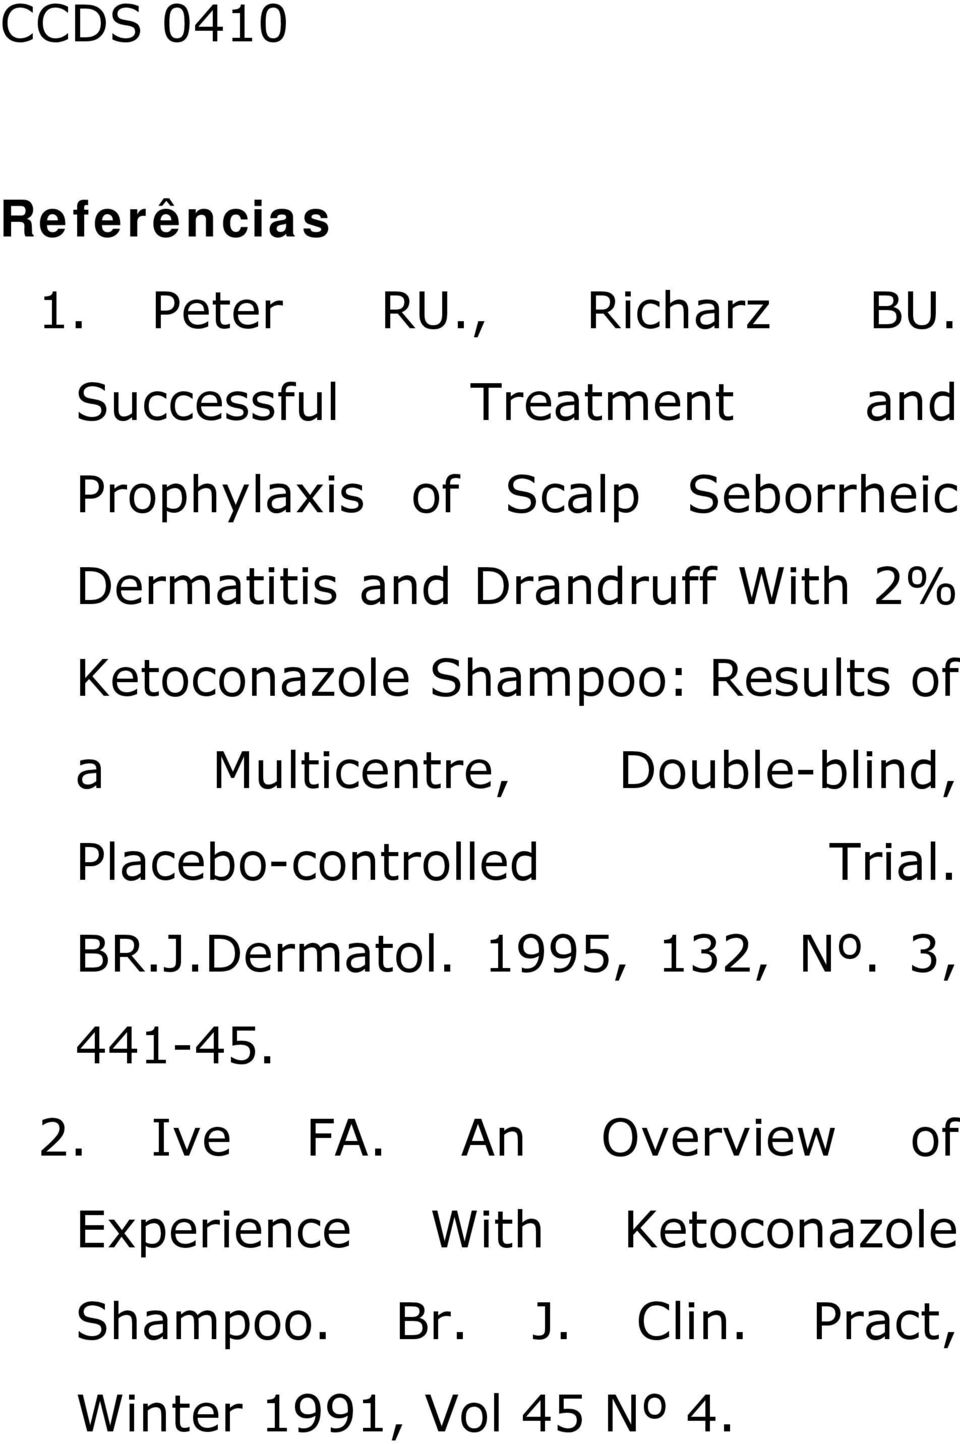 Ketoconazole Shampoo: Results of a Multicentre, Double-blind, Placebo-controlled Trial. BR.